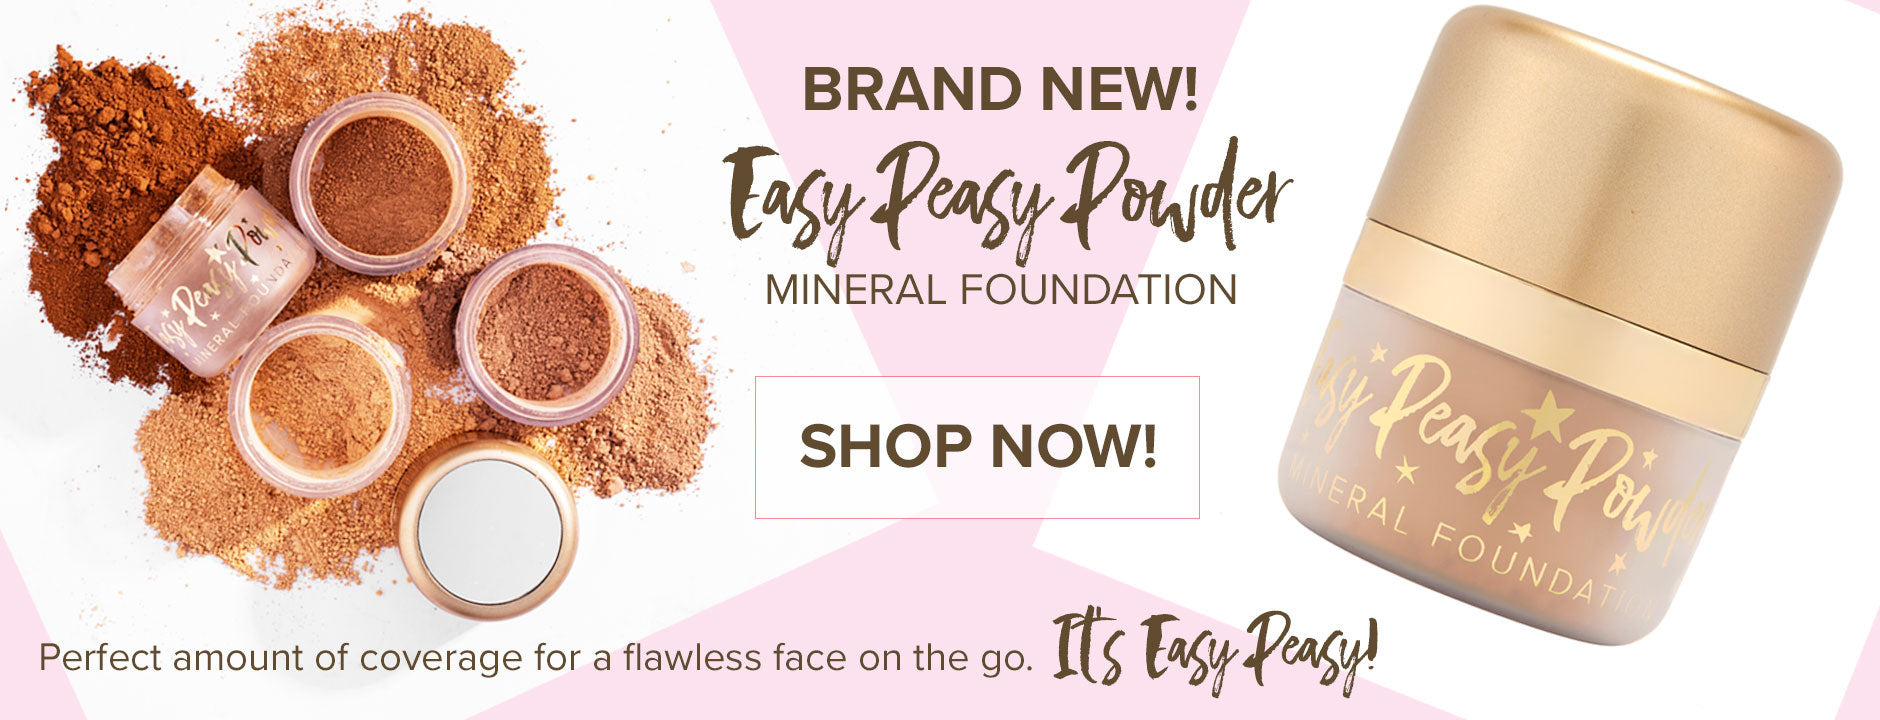 Kim Gravel Belle Beauty Mineral Powder Foundatin